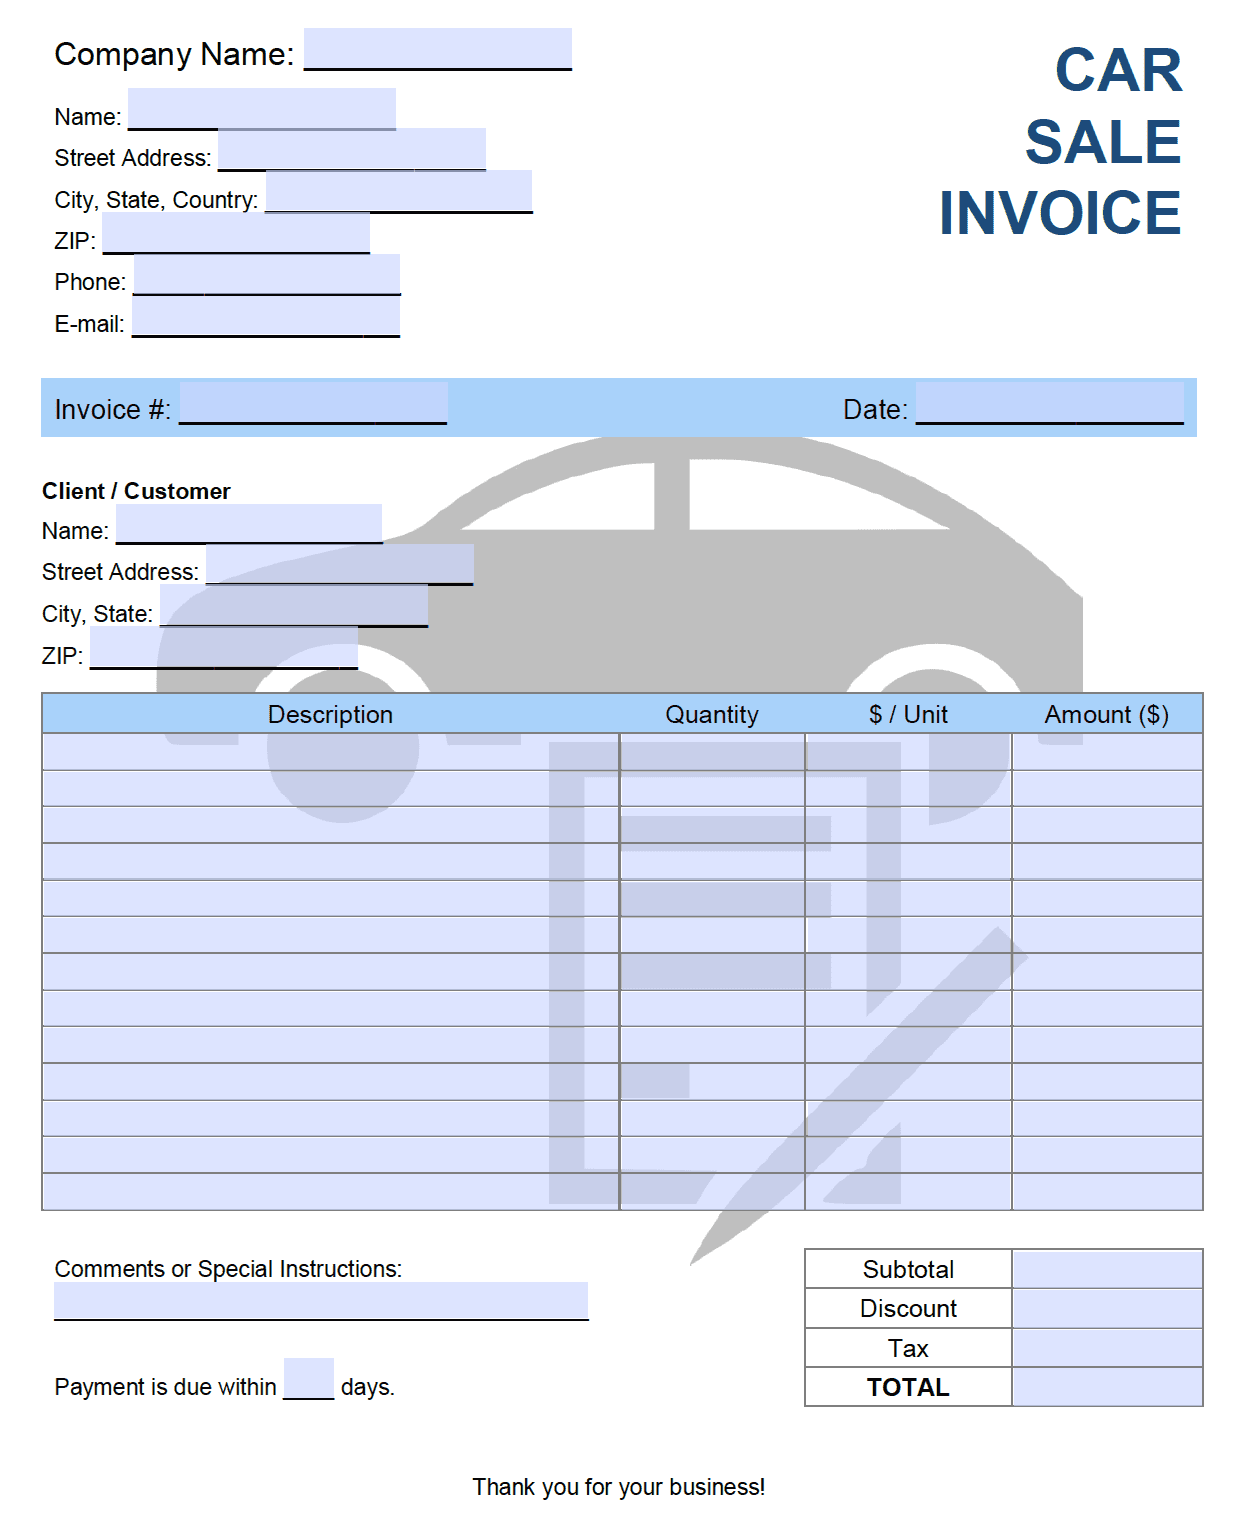 Free Car Sales Invoice Template Pdf Word Excel